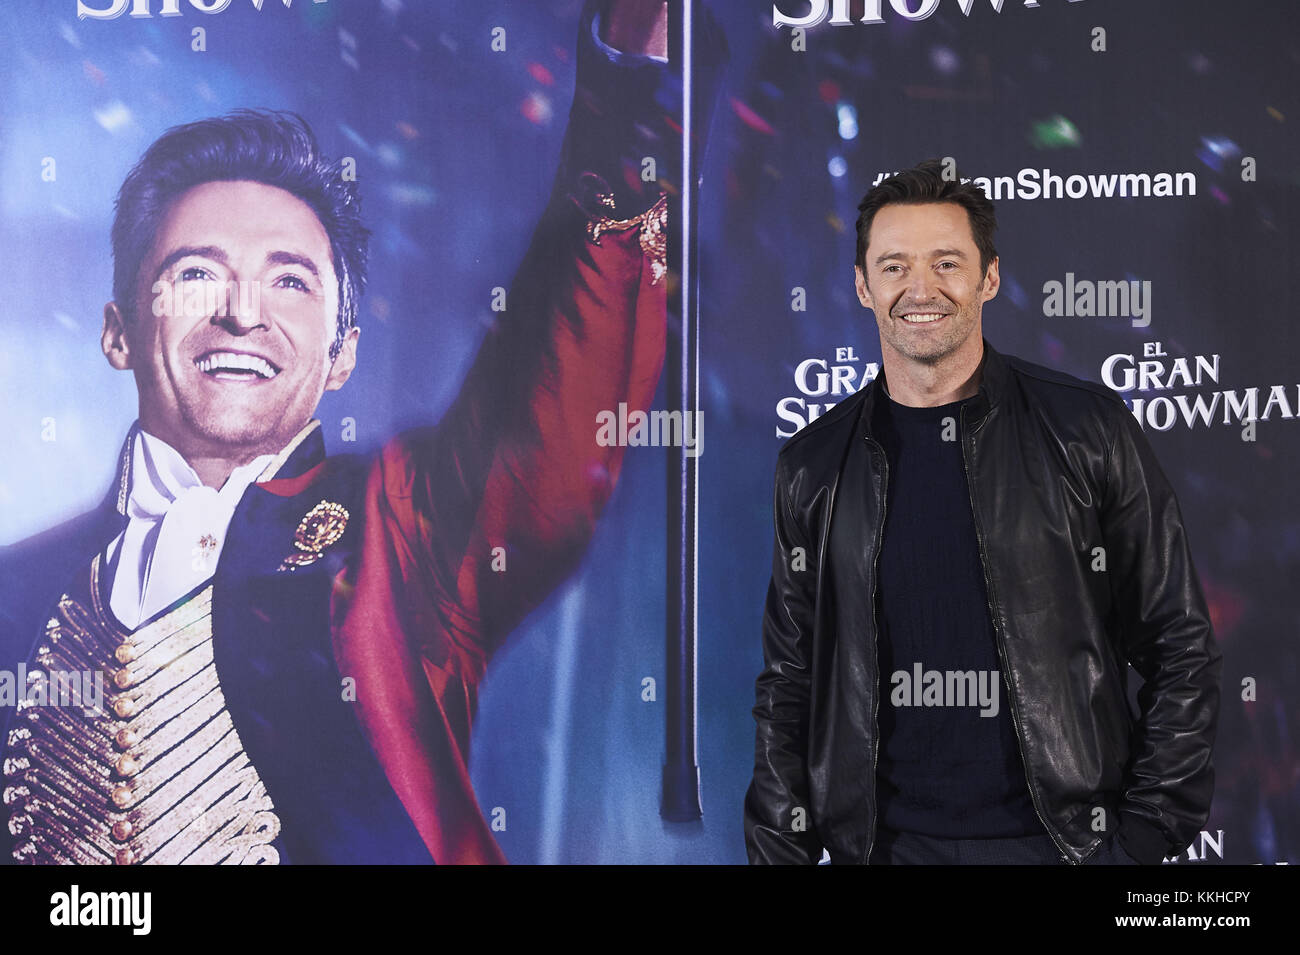 Madrid, Madrid, Spain. 1st Dec, 2017. Hugh Jackman attends 'The Greatest Showman' photocall at Villamagna - Stock Image